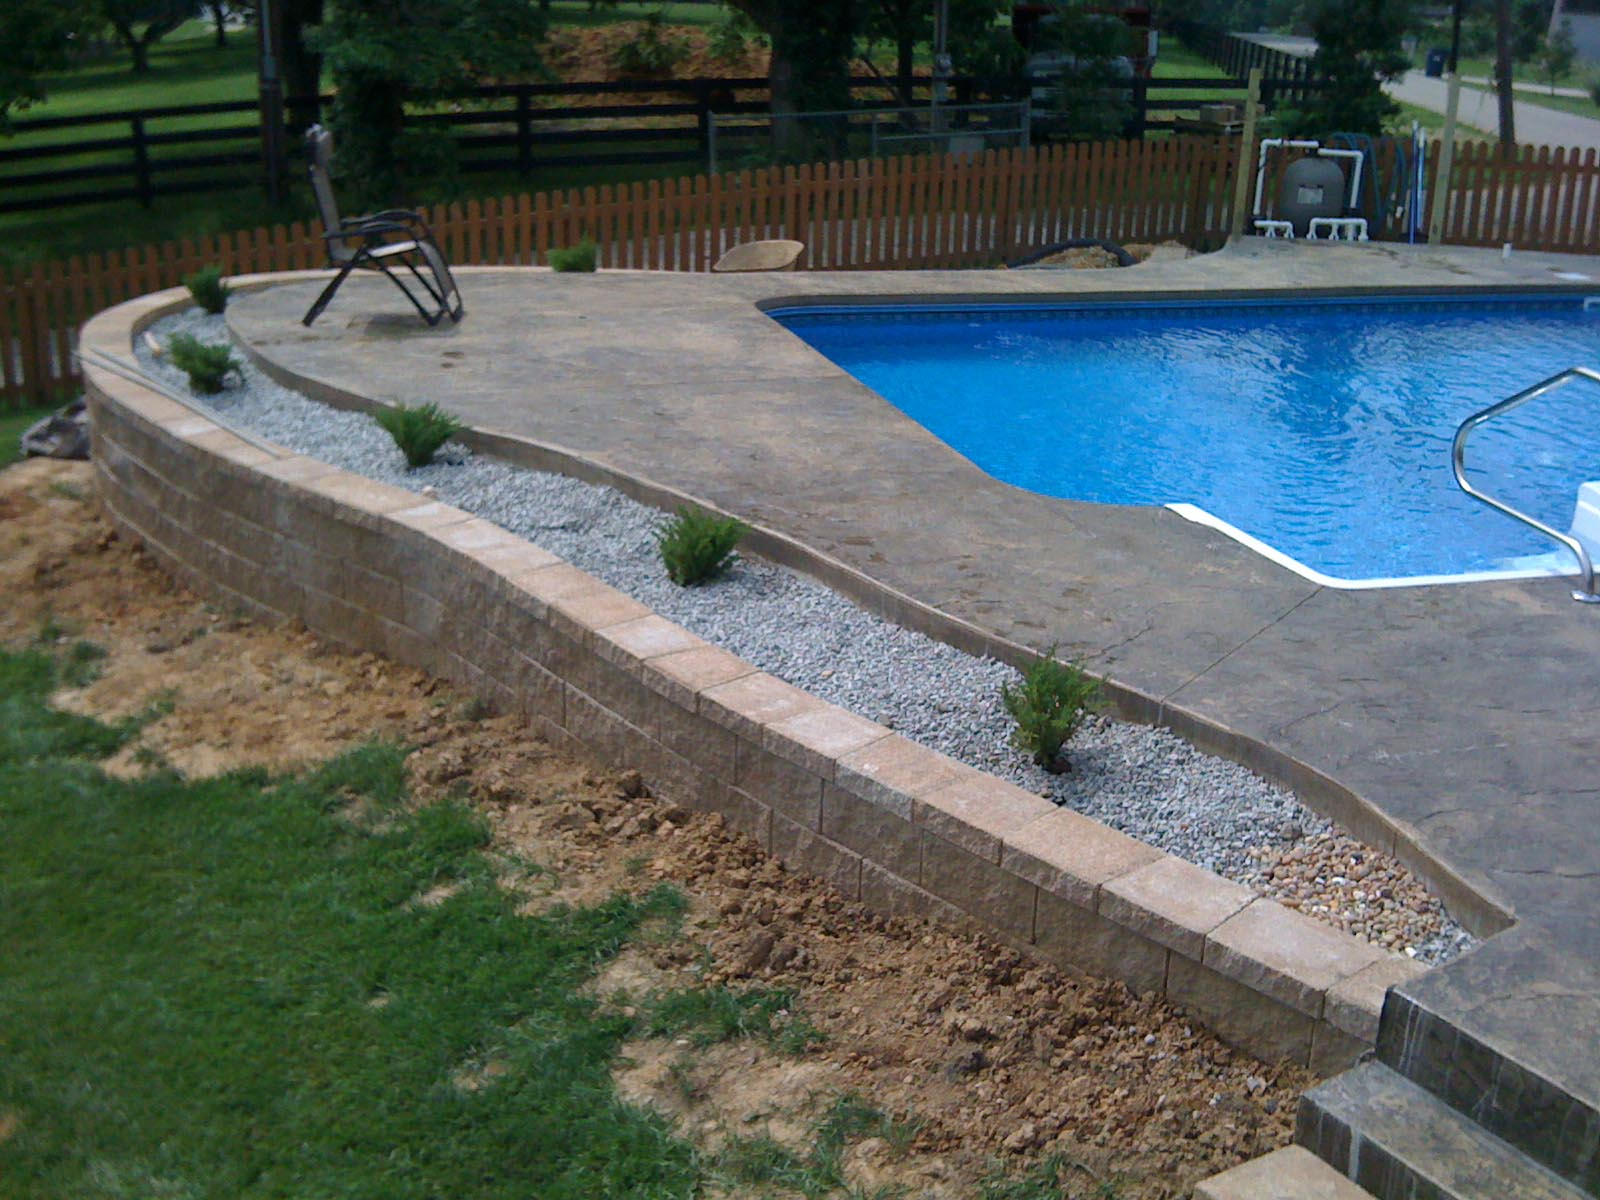 Pool Deck Ideas For Inground Pools Decks Ideas with 10 Awesome Tricks of How to Improve Backyard Pool Deck Ideas